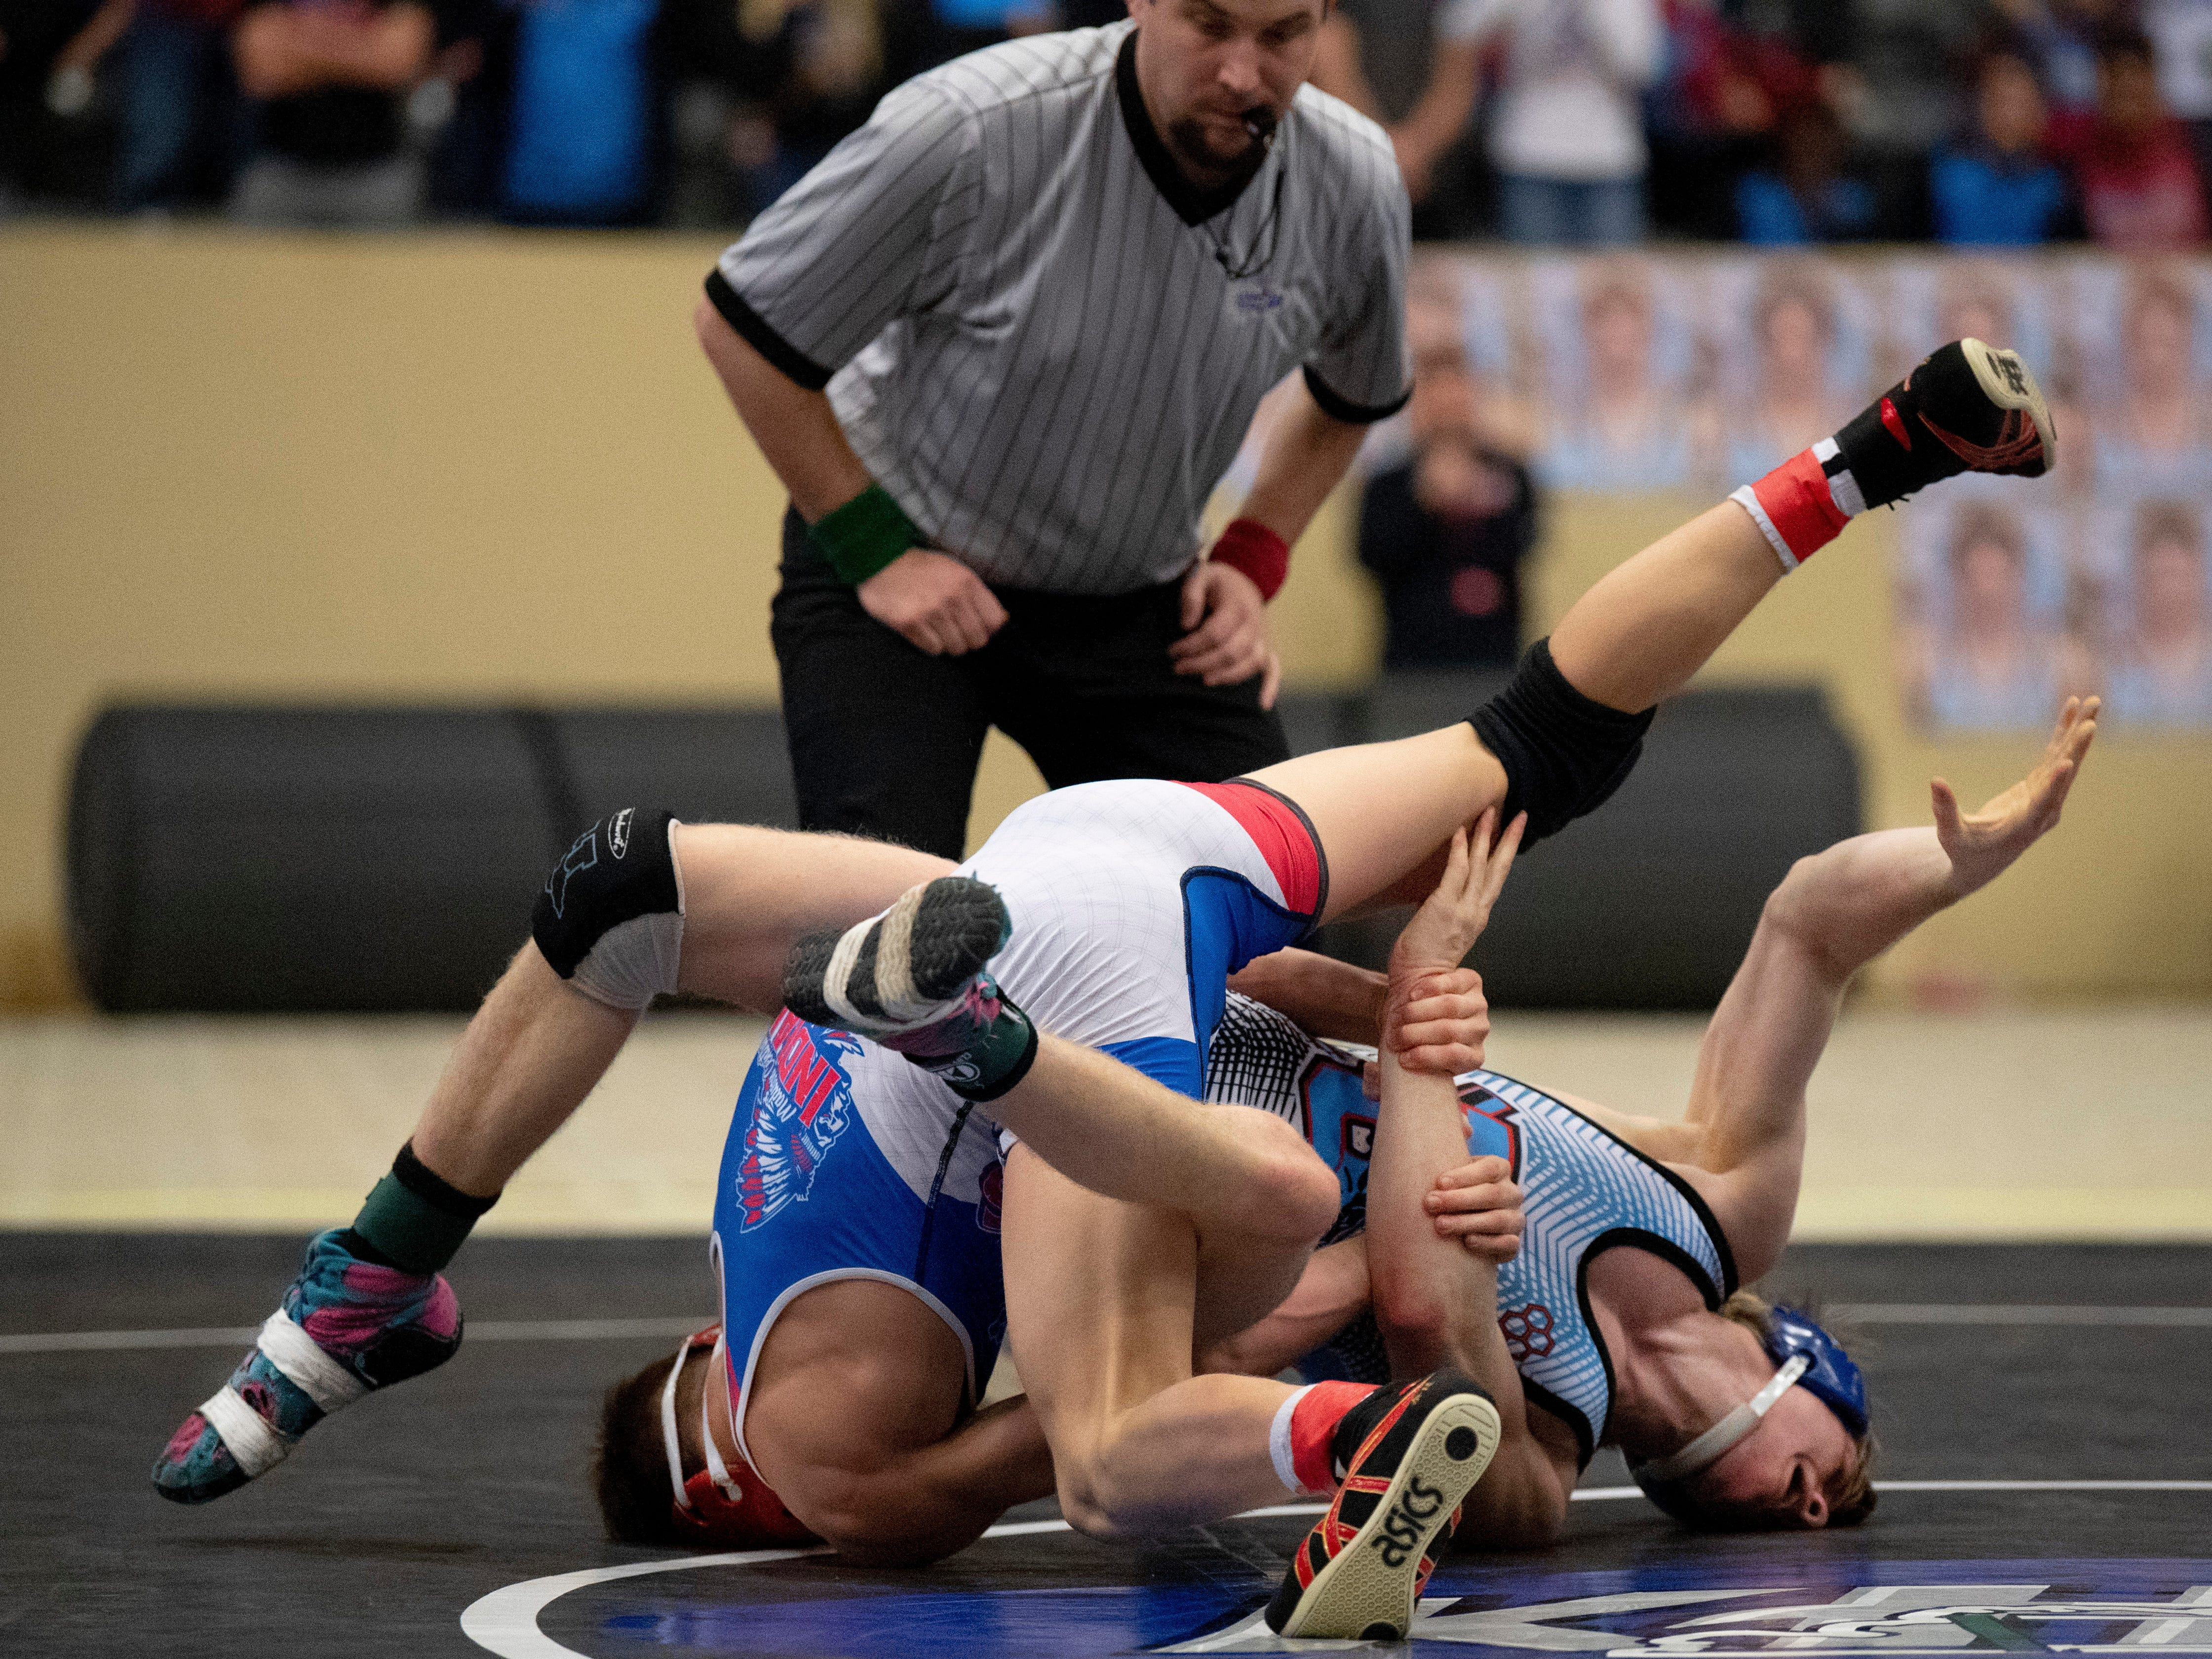 Union County's Sam Bacon, right, and Madison Central's Thomas Deck compete in 126-pound championship match  at the KHSAA State Wrestling Championships at the Alltech Arena in Lexington, Ky., Saturday afternoon.